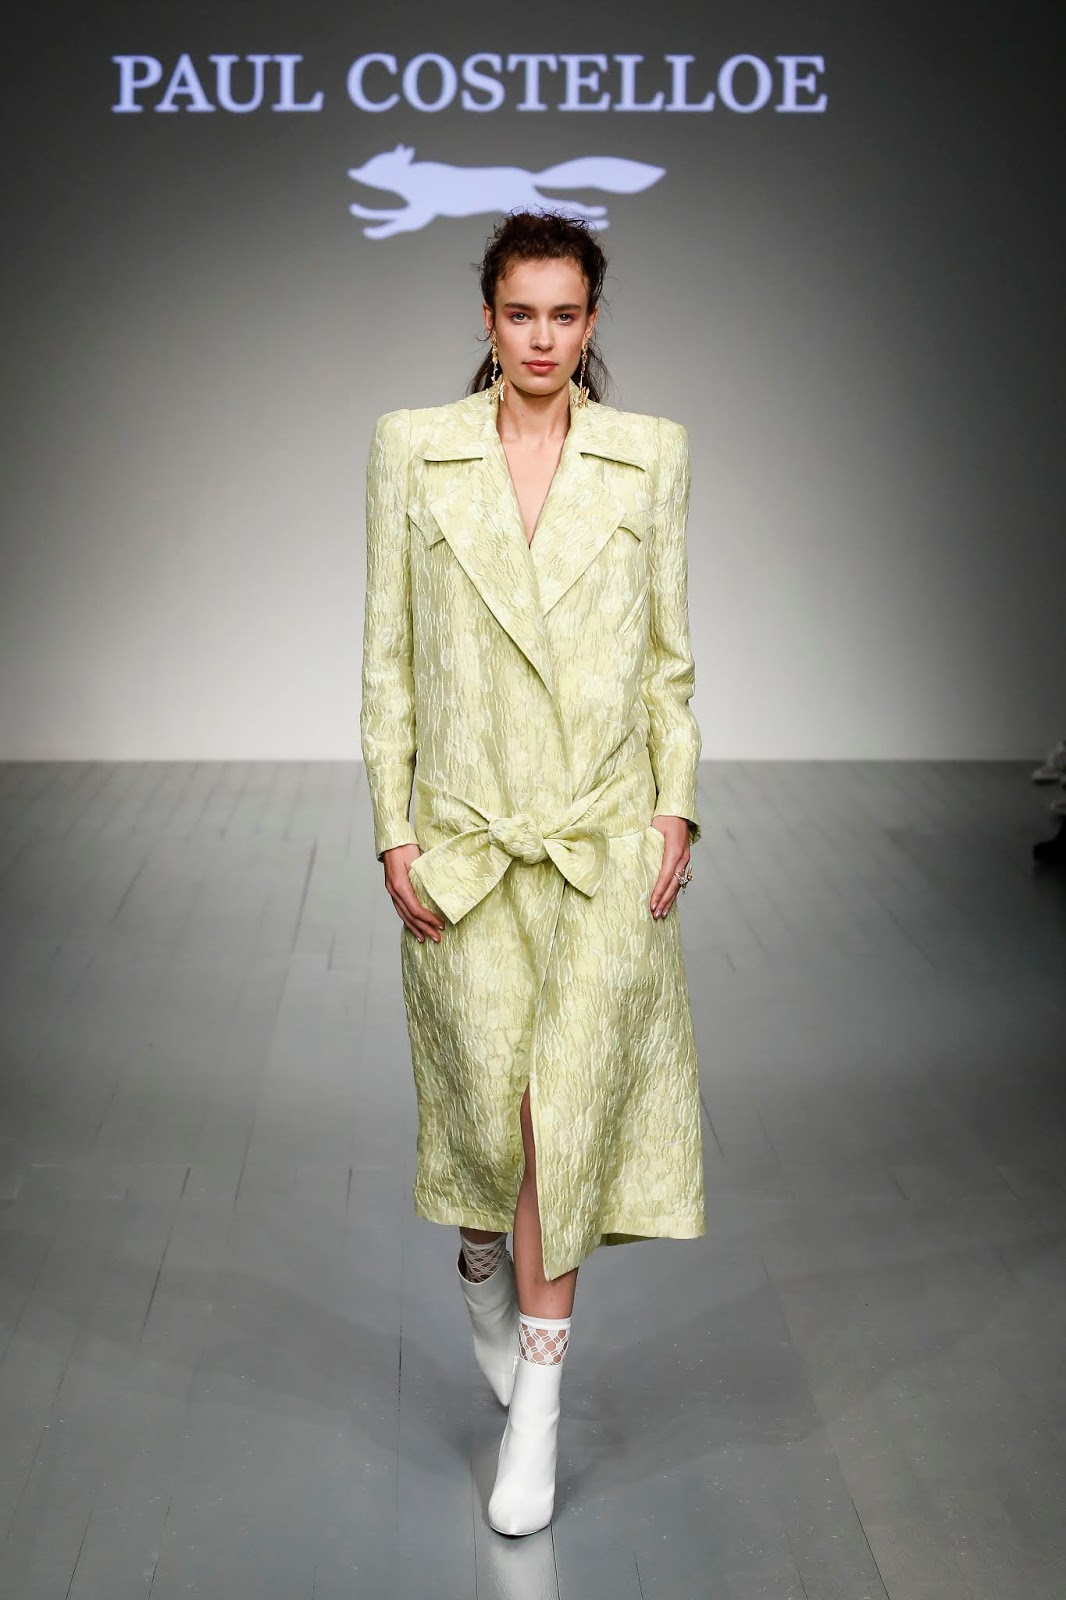 422a283b102 frumpy to funky: Paul Costelloe SS19 at London Fashion Week